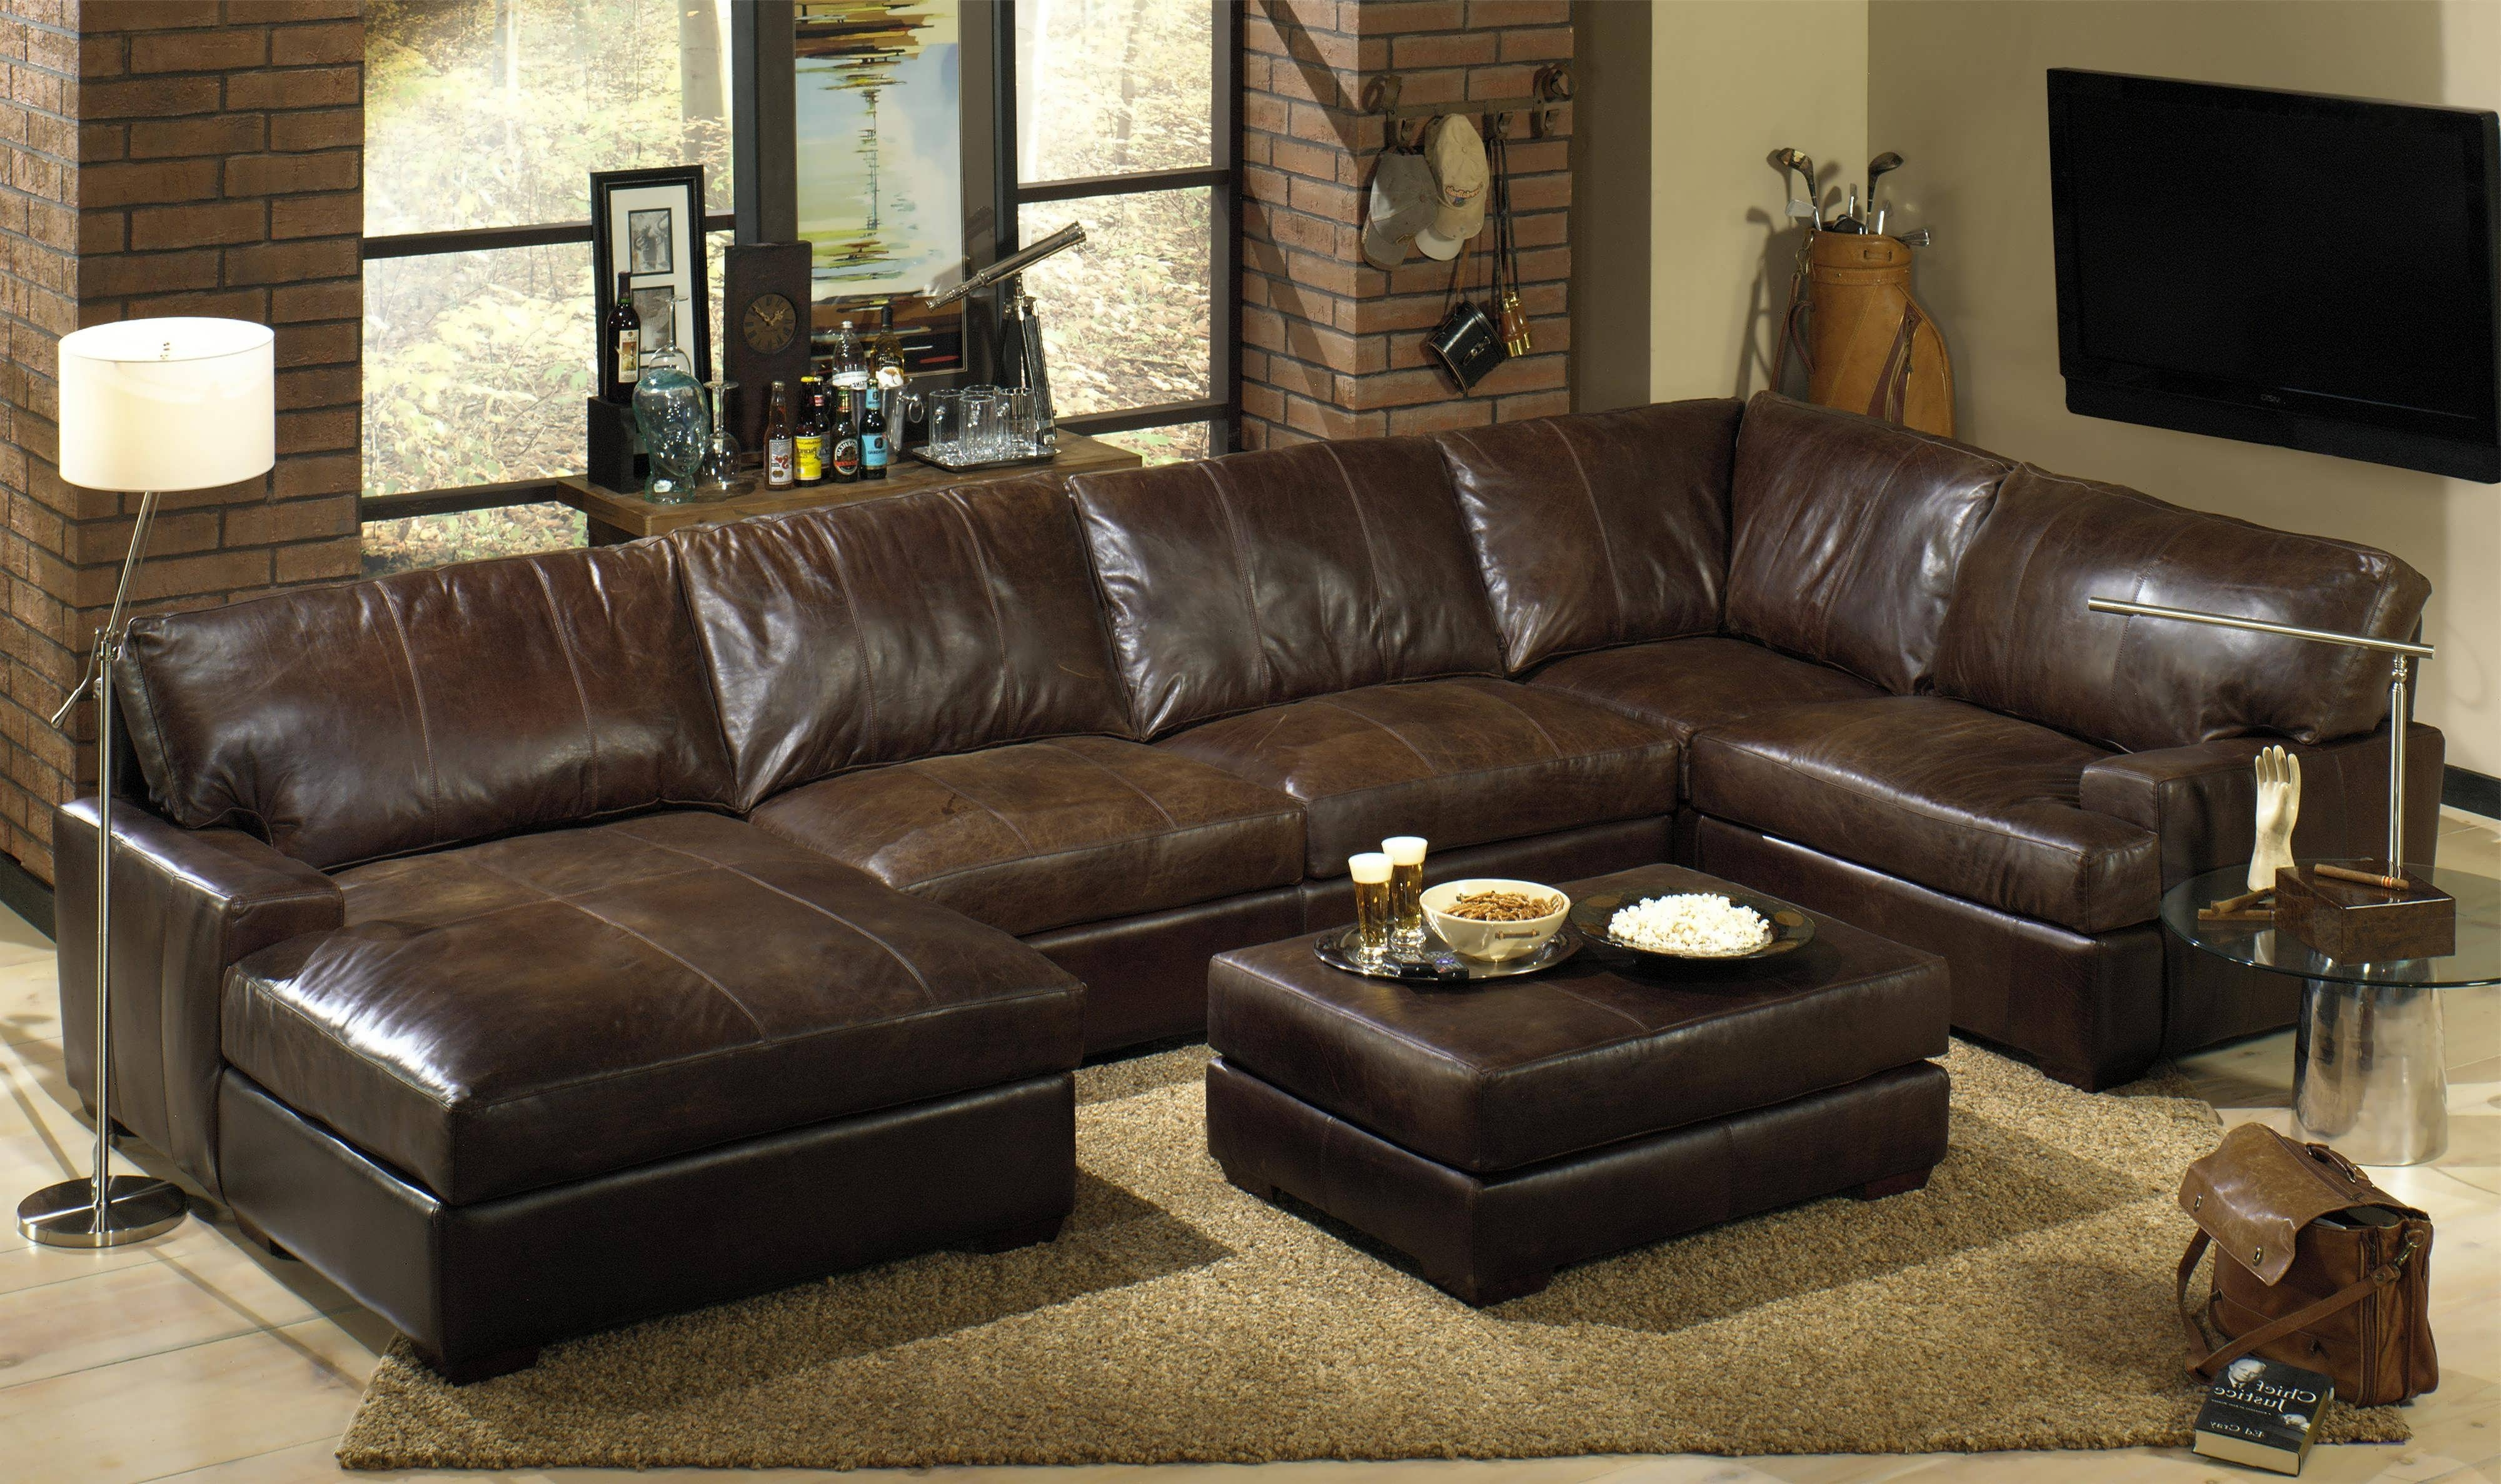 Well Liked Sofa : Chaise Sofa Sectional With Chaise And Recliner White For Leather Couches With Chaise (View 2 of 15)